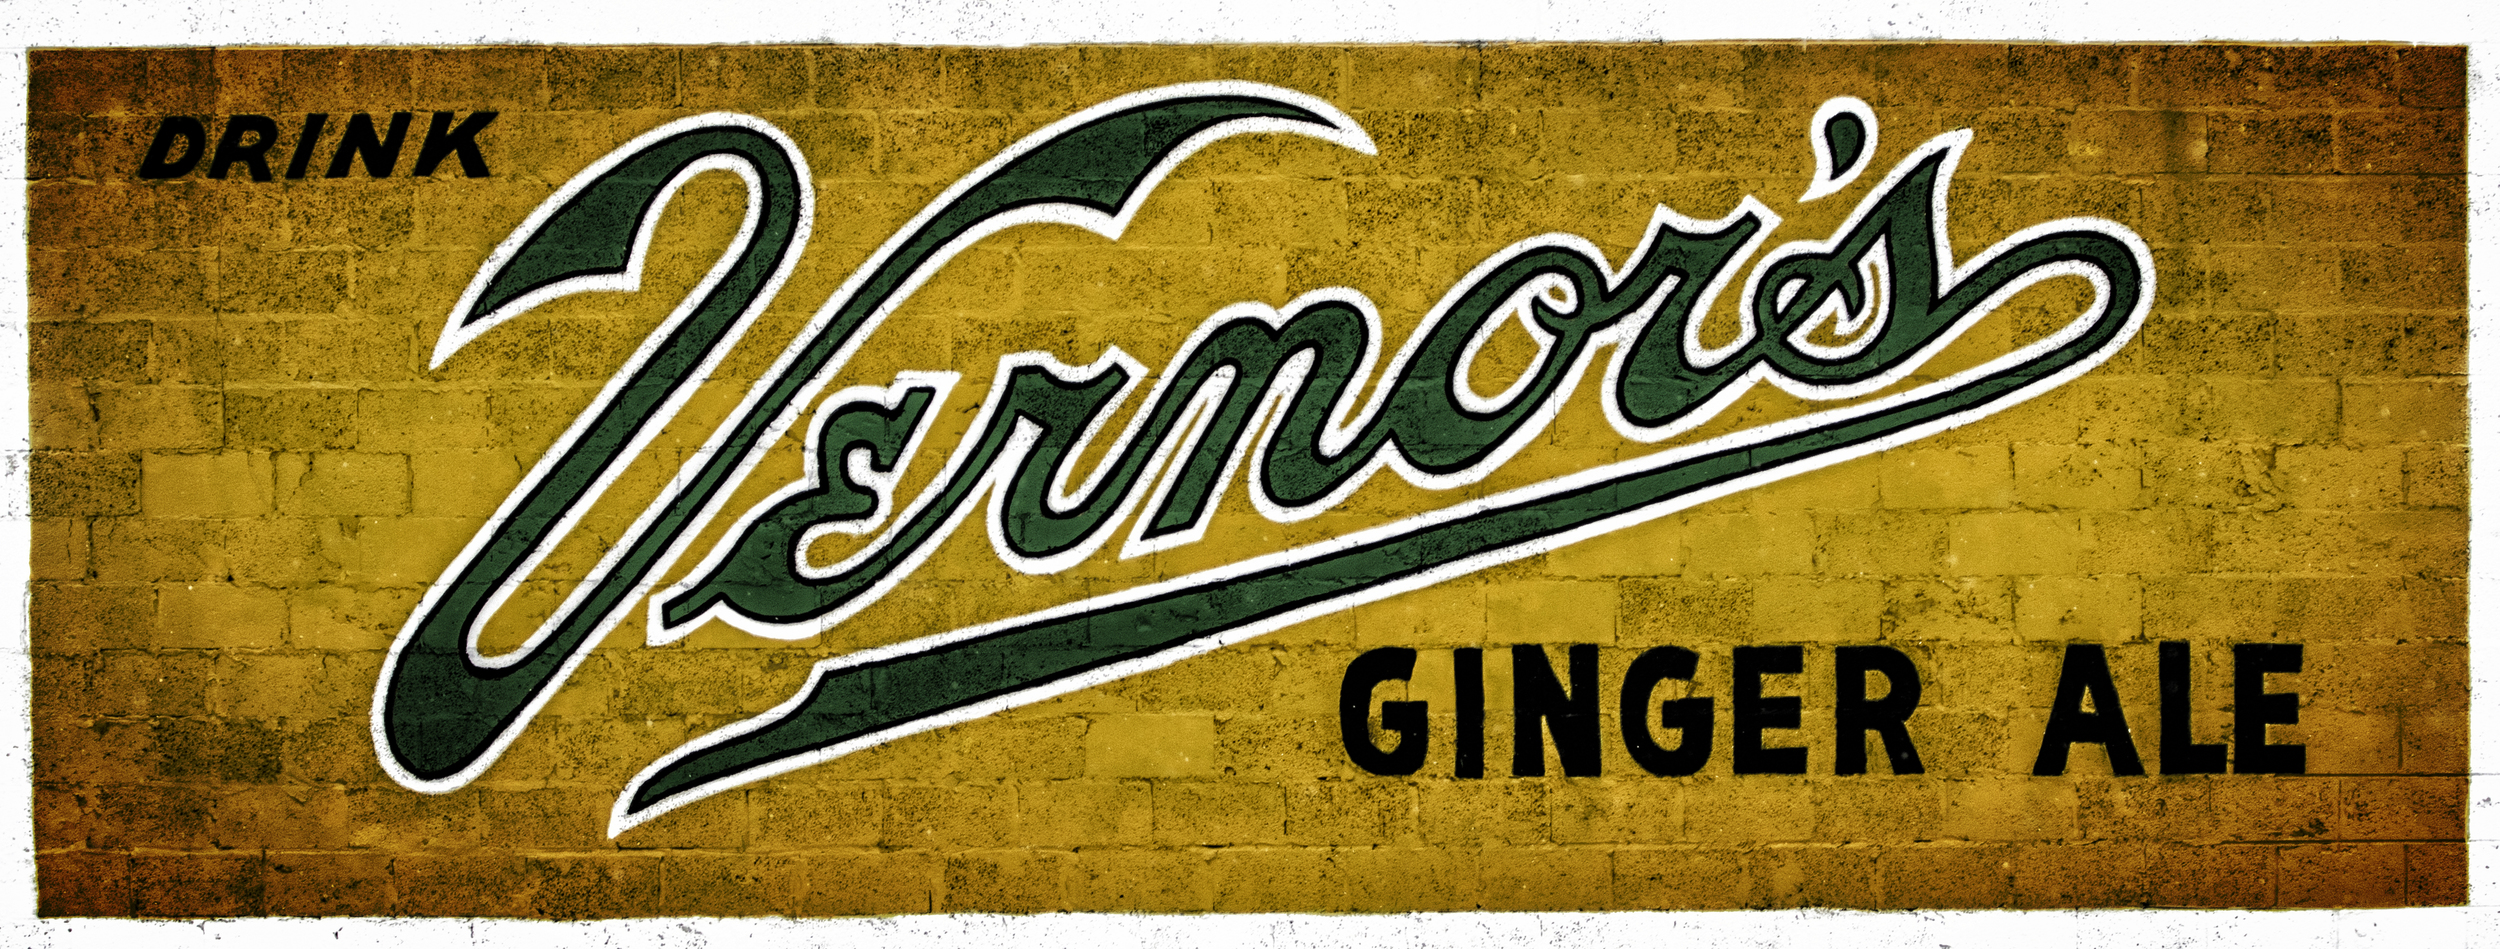 Vernor's Ginger Ale building sign